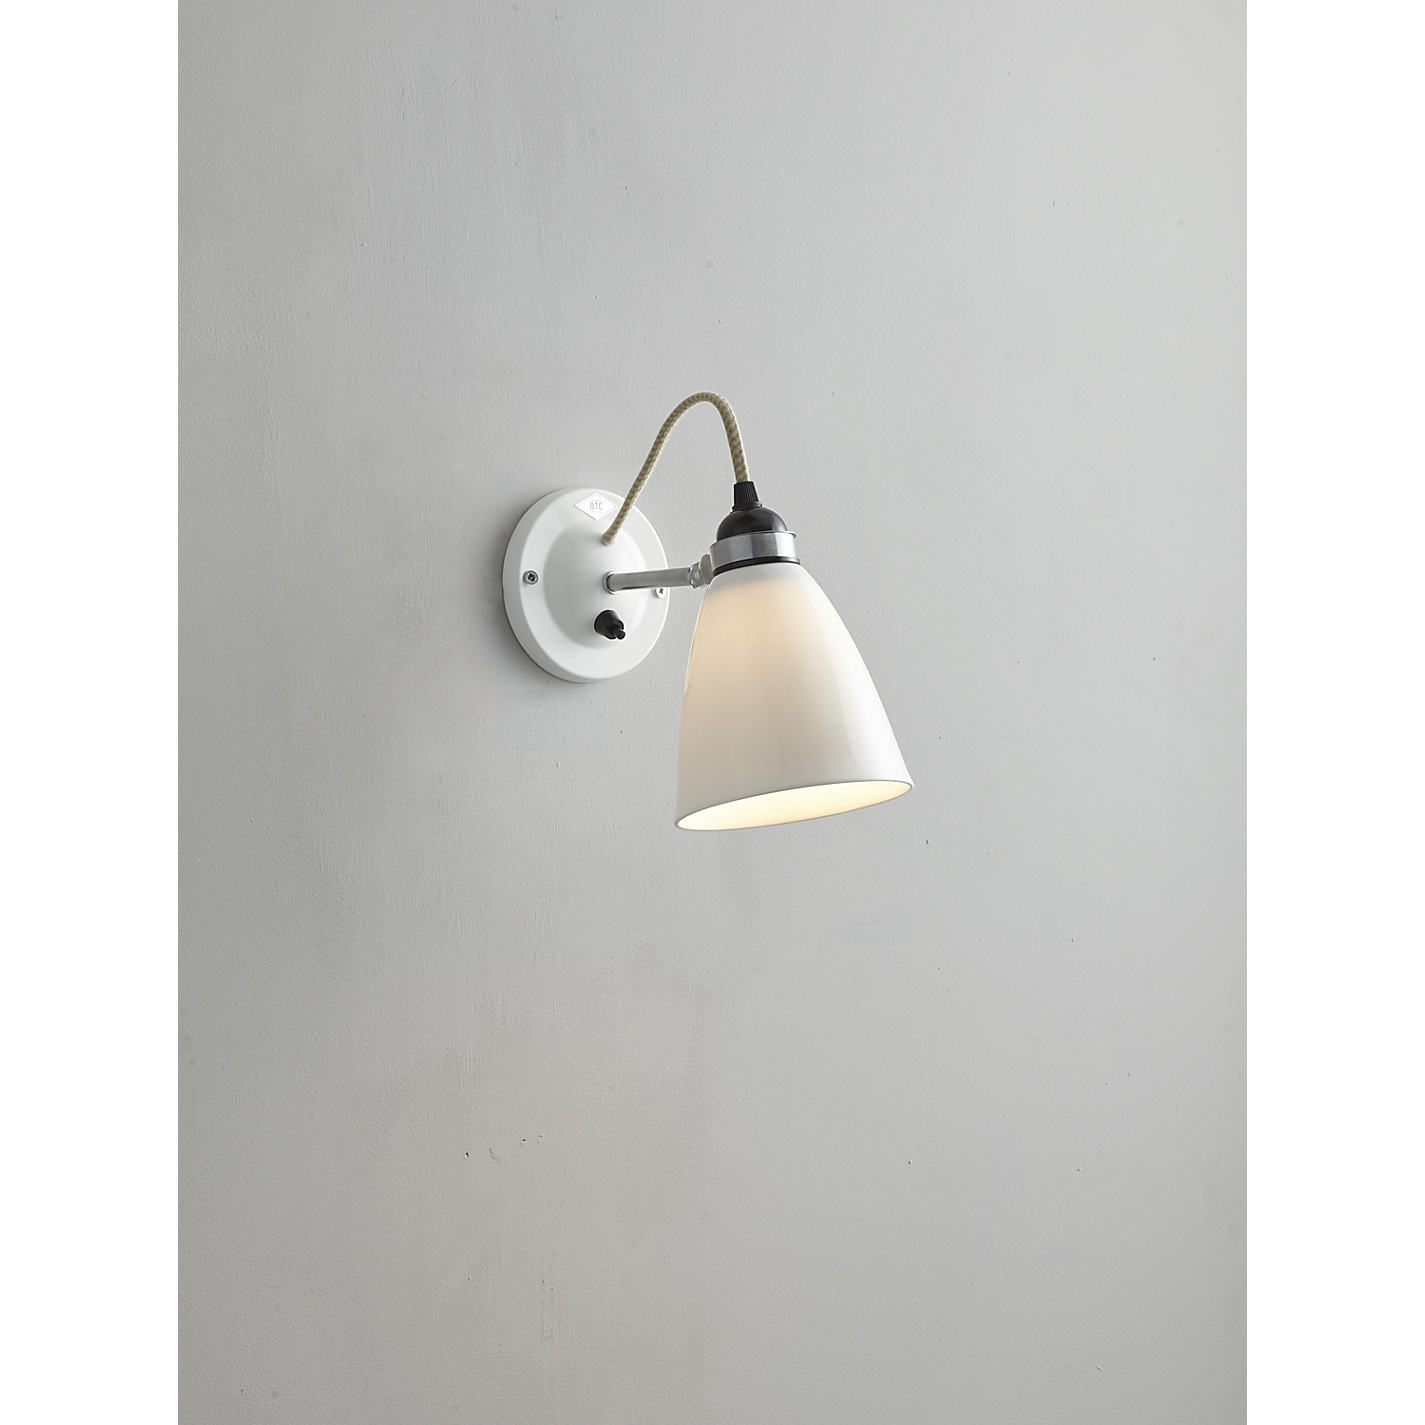 Buy original btc hector dome switched wall light medium natural buy original btc hector dome switched wall light medium natural white online at johnlewis aloadofball Image collections